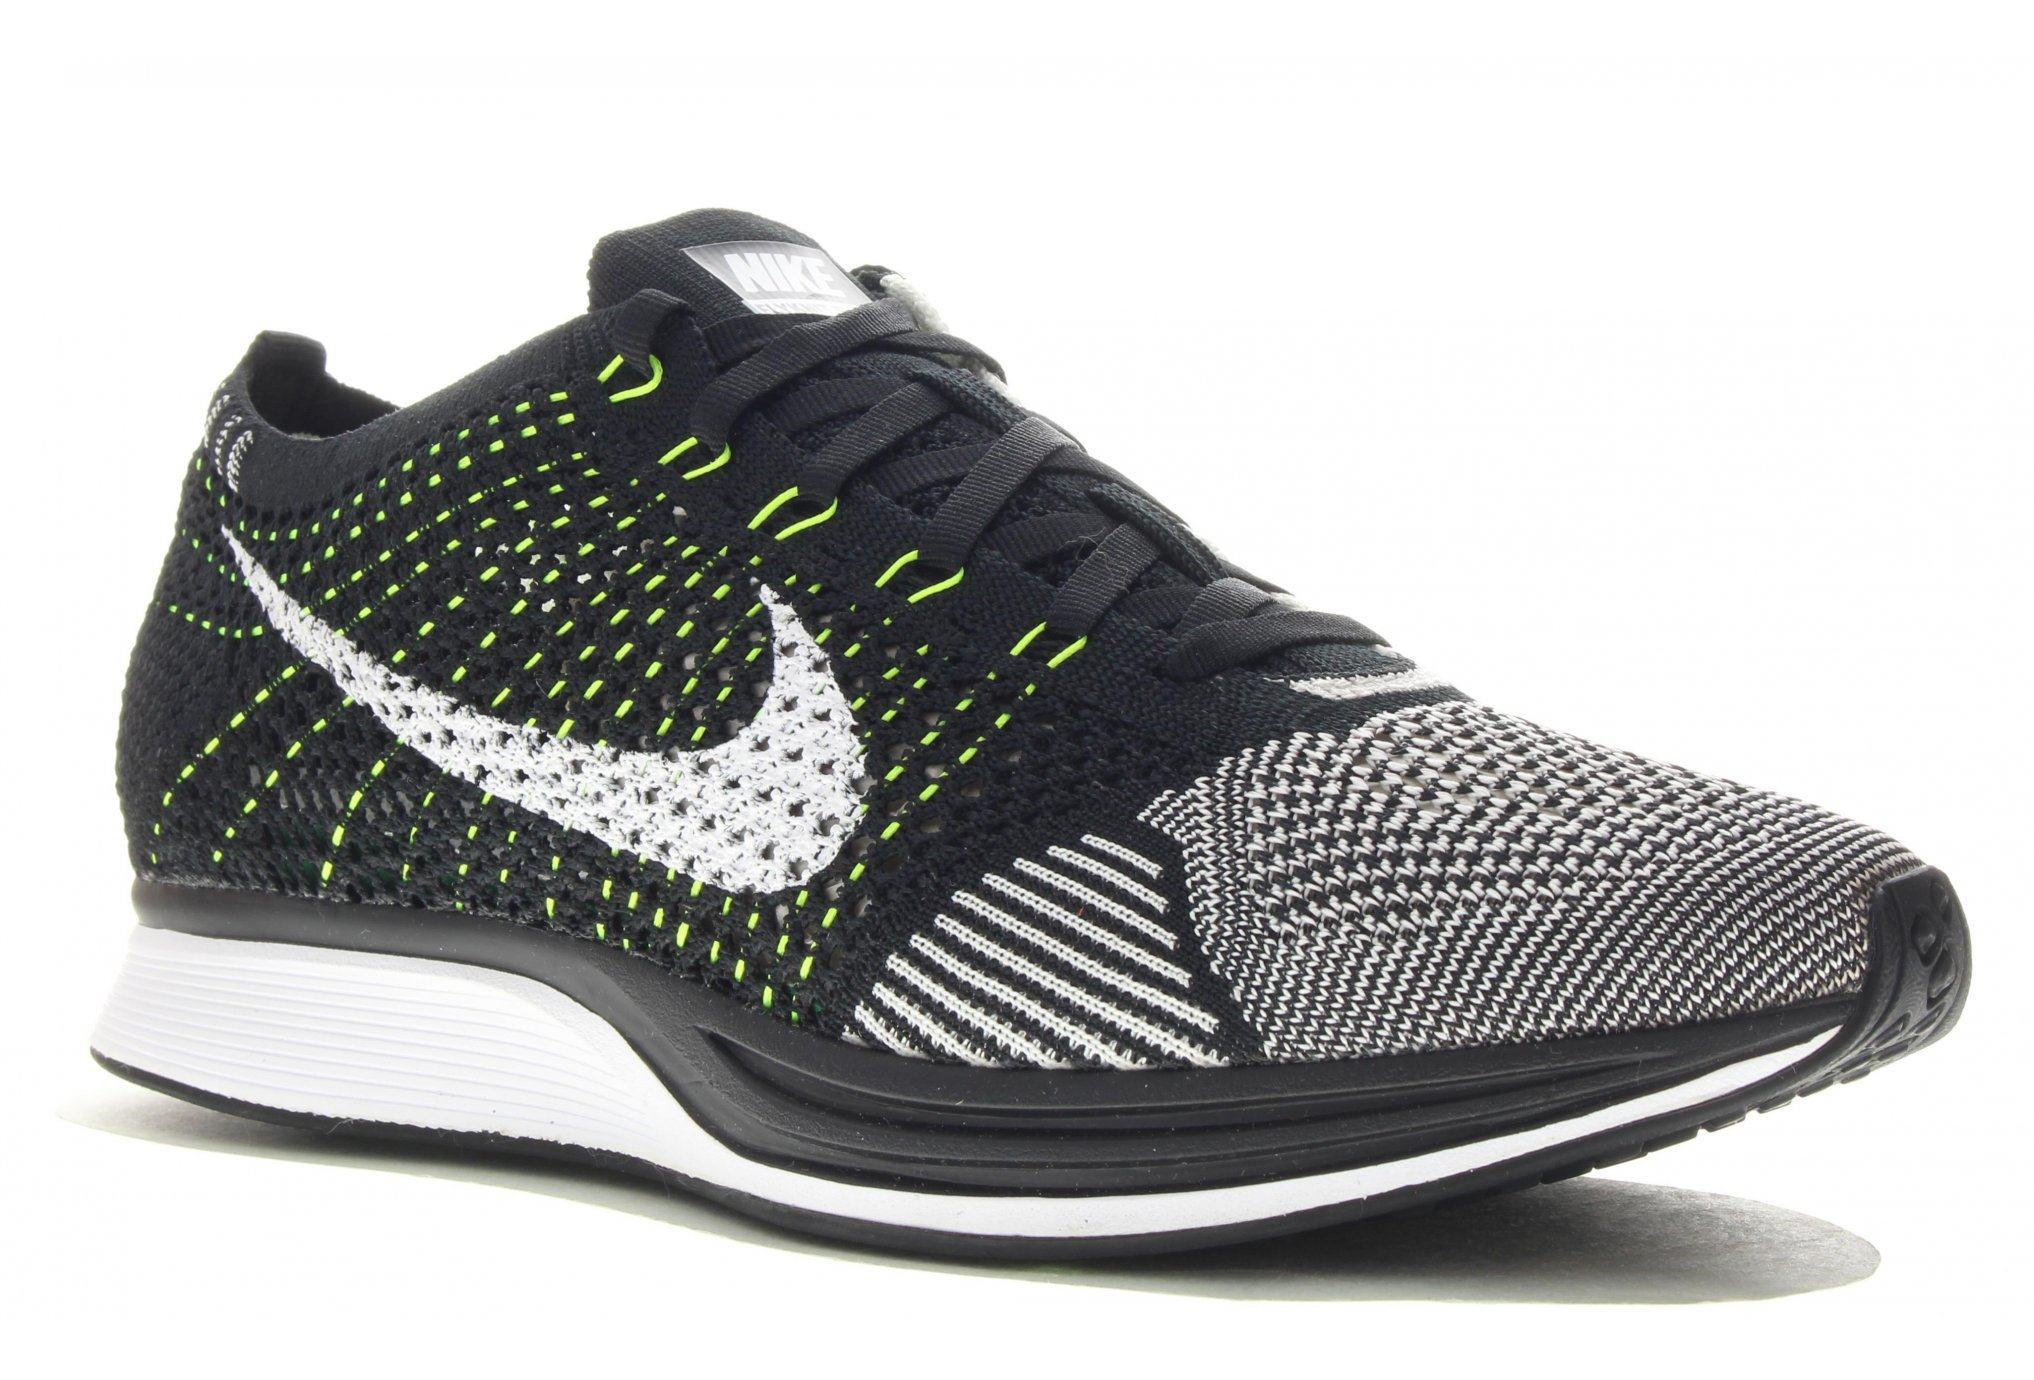 nike-flyknit-racer-m-chaussures-homme-155864-1-fz